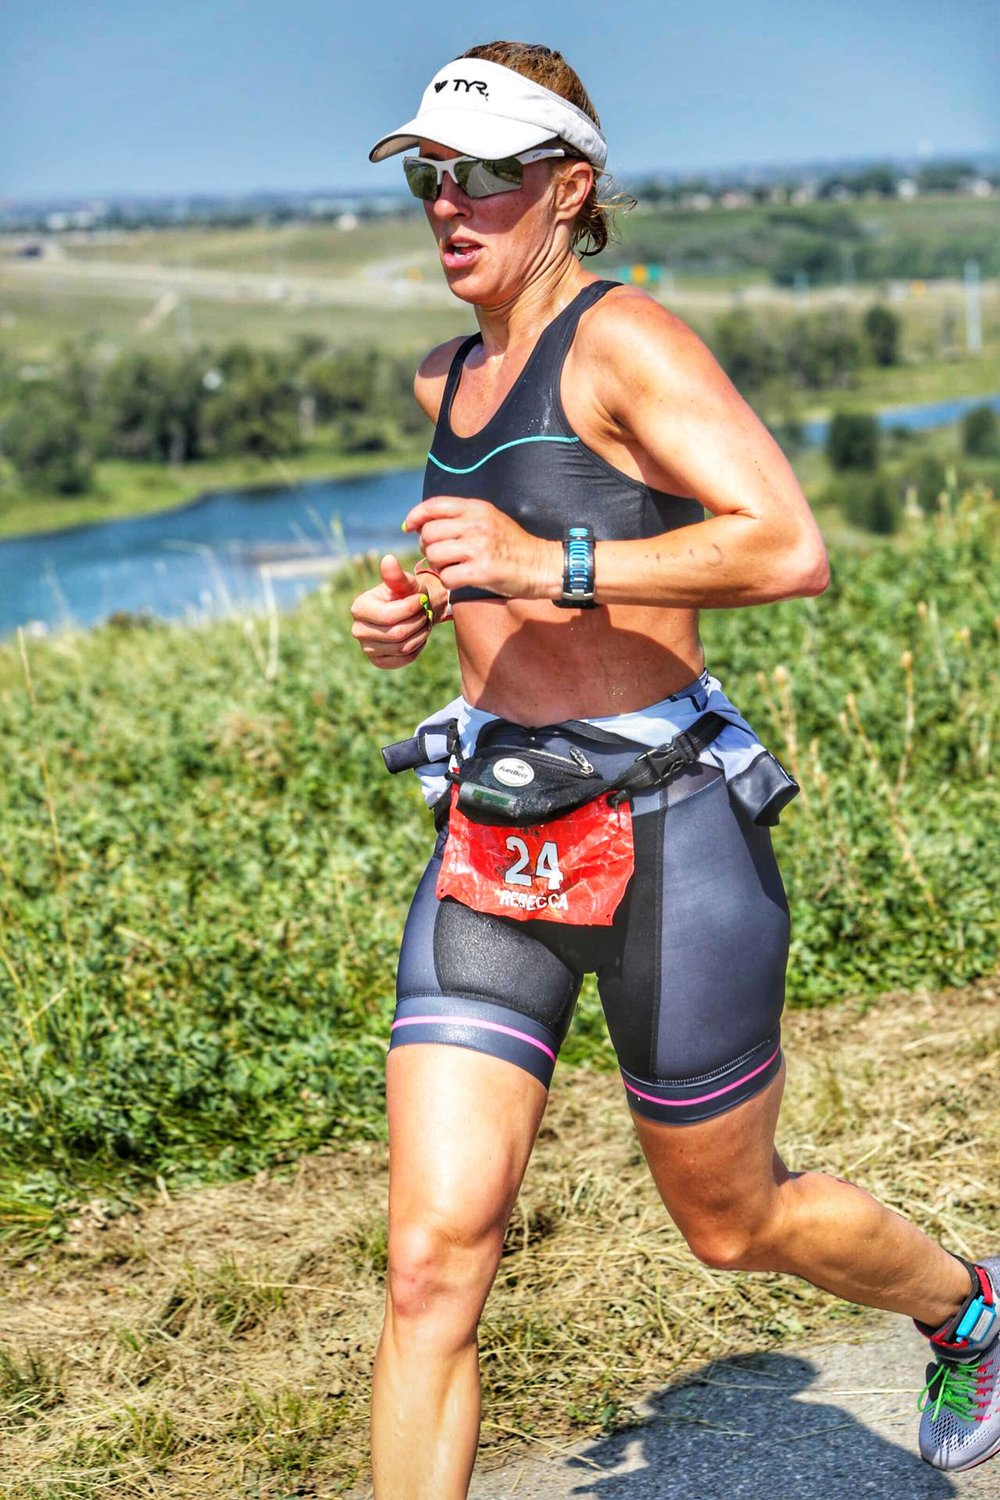 Coach_Terry_Wilson_Pursuit_of_The_Perfect_Race_IRONMAN_70.3_Calgary_Rebecca_McKee_World_Championships_run.jpg